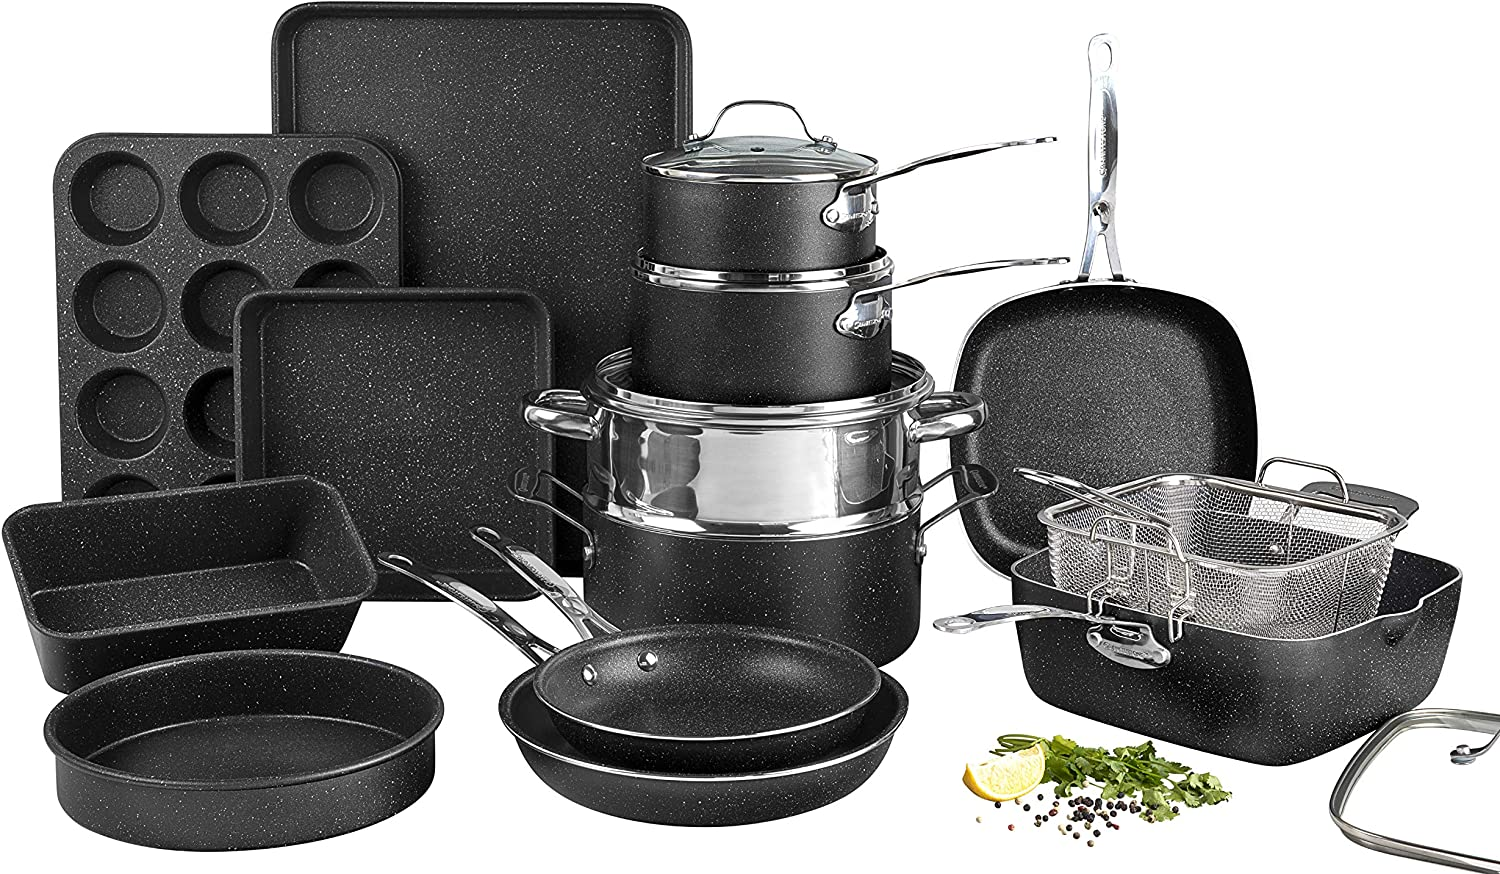 Amazon Com Granite Stone Pots And Pans Set 20 Piece Complete Cookware Bakeware Set With Ultra Nonstick 100 Pfoa Free Coating Includes Frying Pans Saucepans Stock Pots Steamers Cookie Sheets Baking Pans